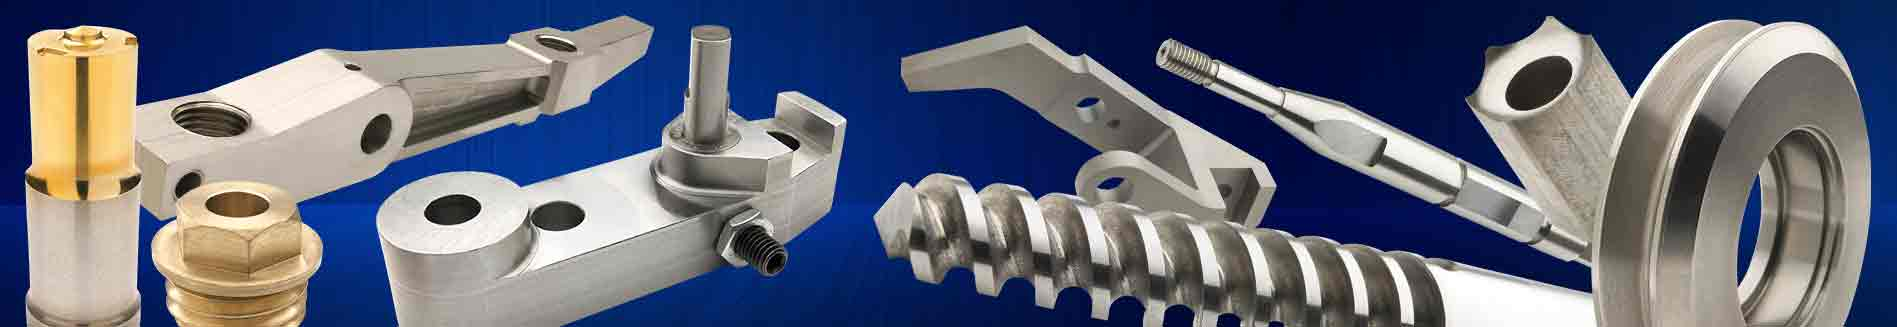 high-precision carbide tooling